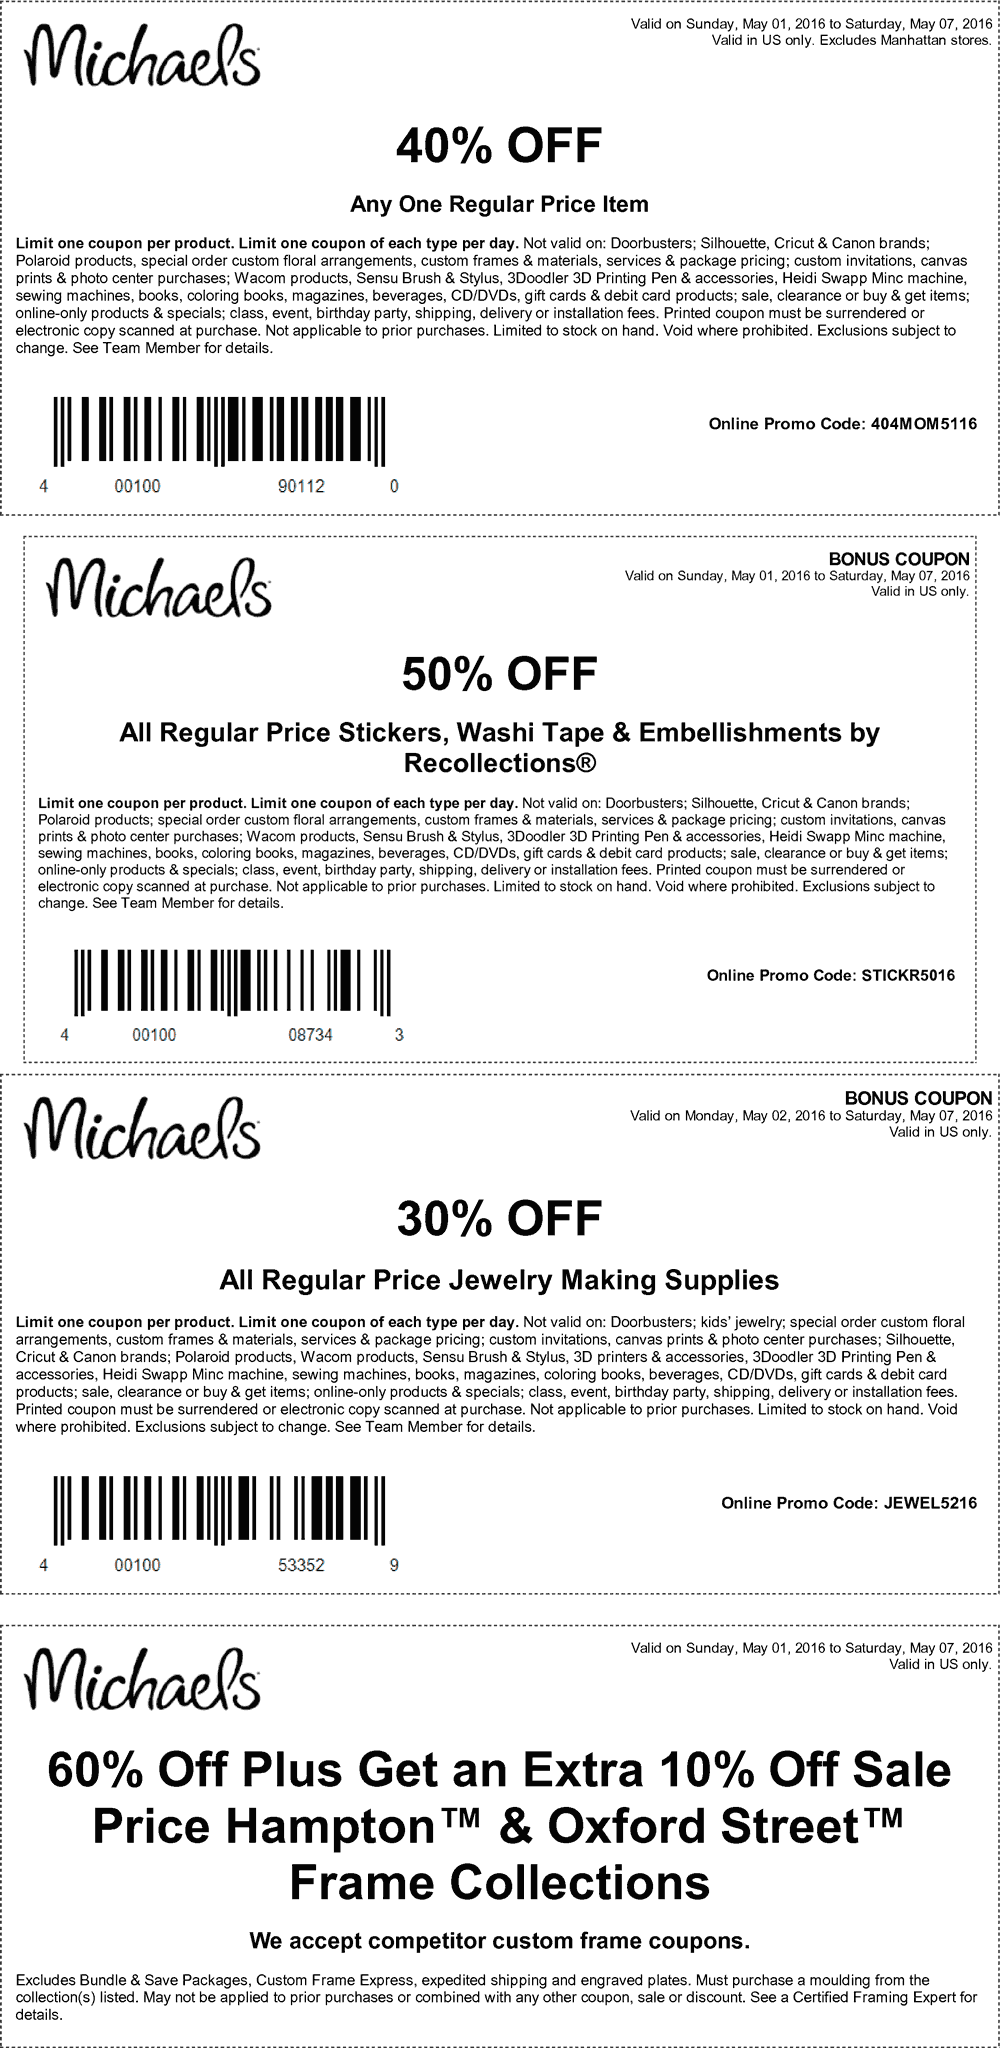 Michaels Coupon March 2018 40% off a single item & more at Michaels, or online via promo code 404MOM5116